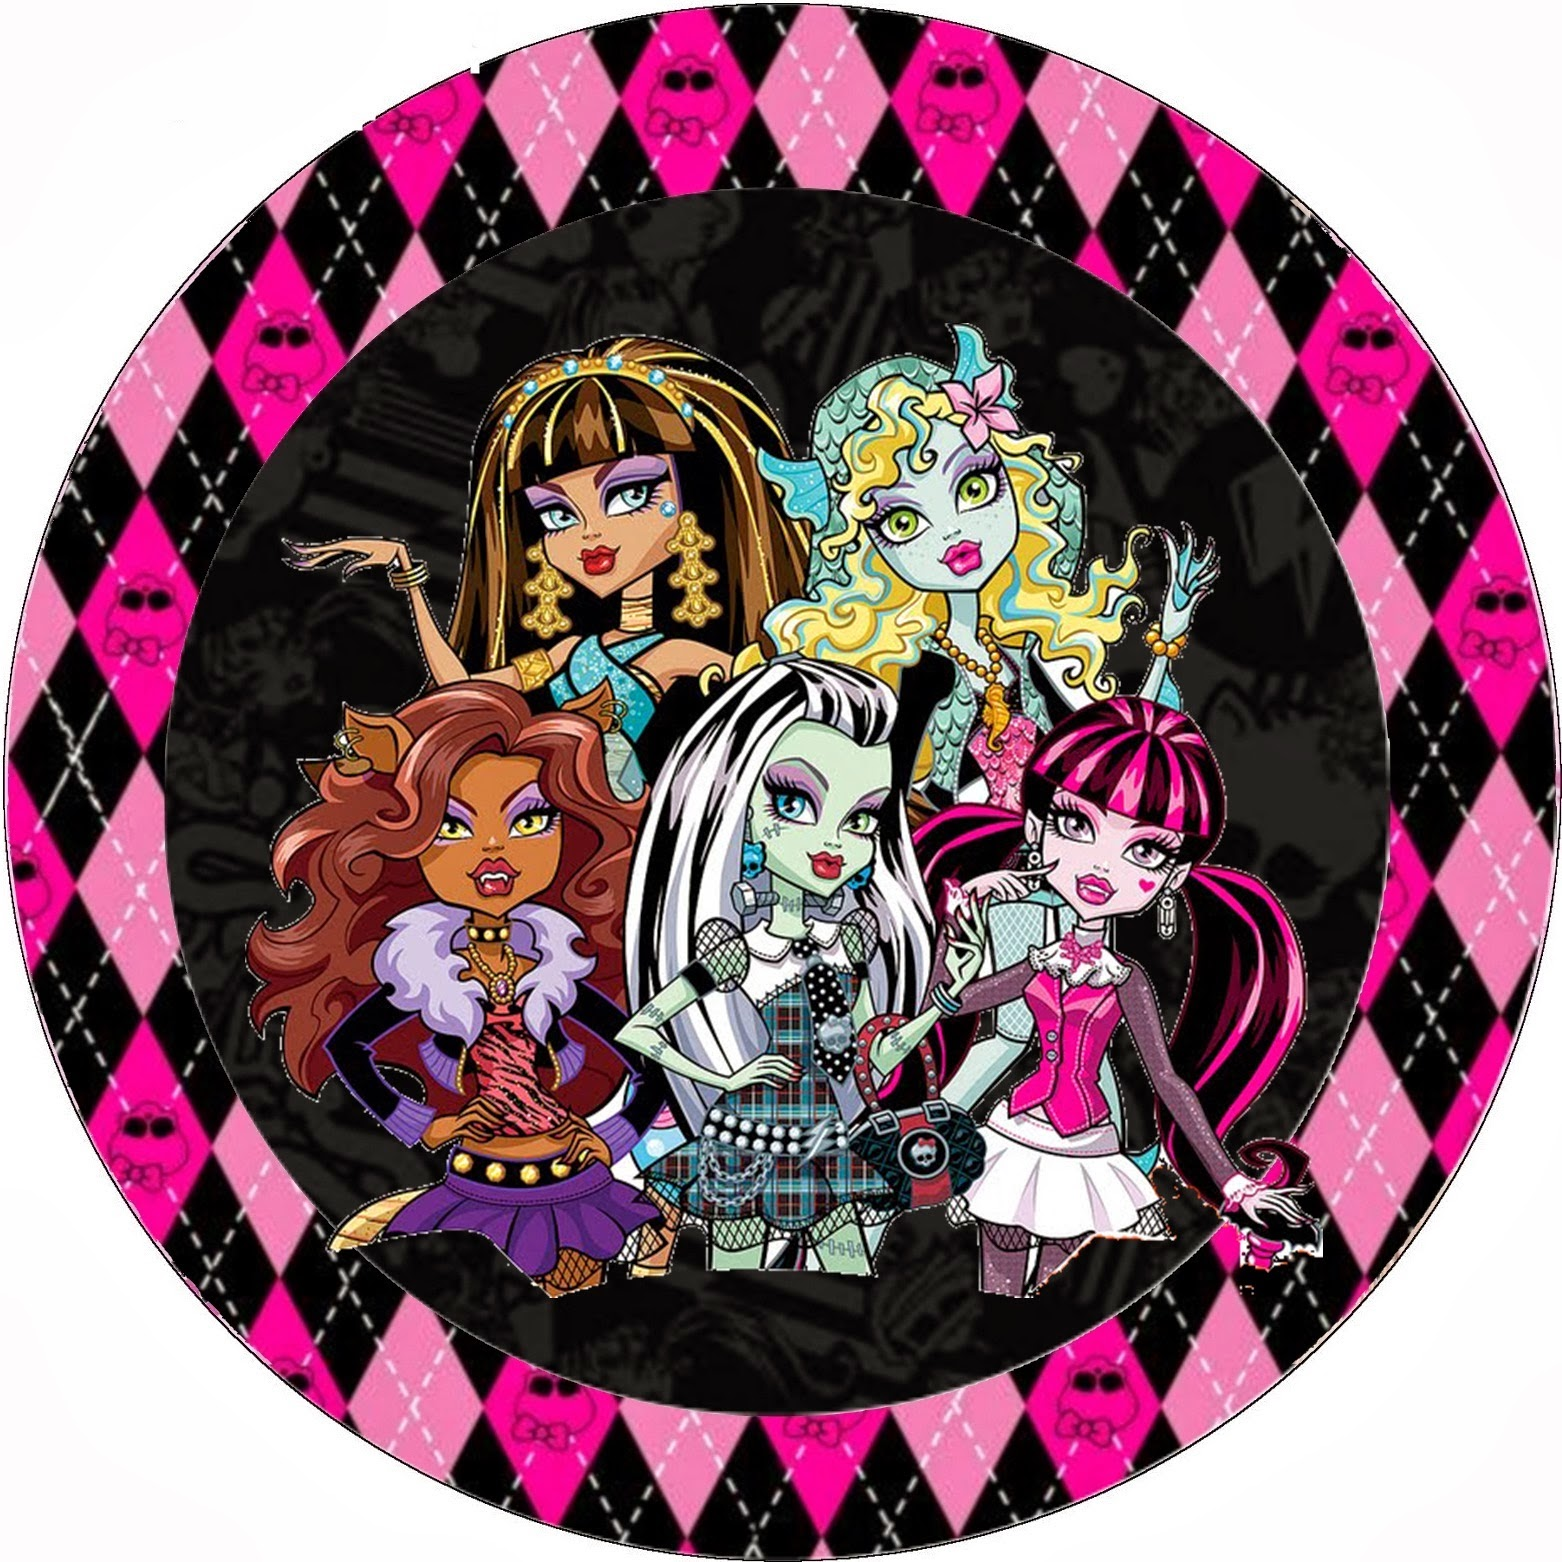 Monster high halloween special free printable kit oh my - Monster high image ...